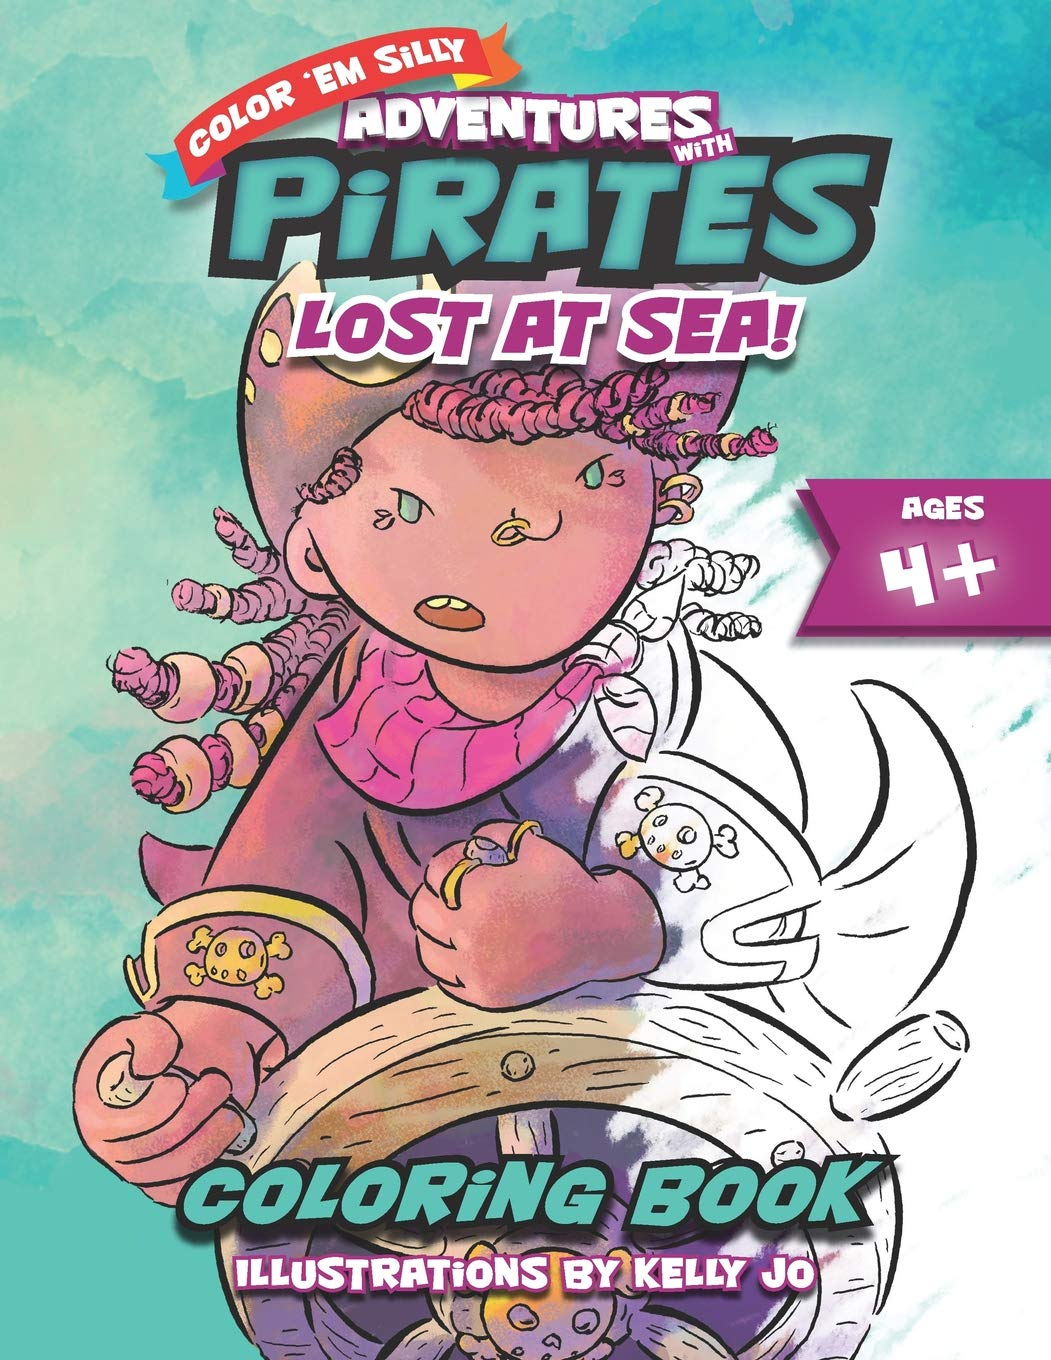 Adventures With Pirates - Lost at Sea!: Coloring Book for ...